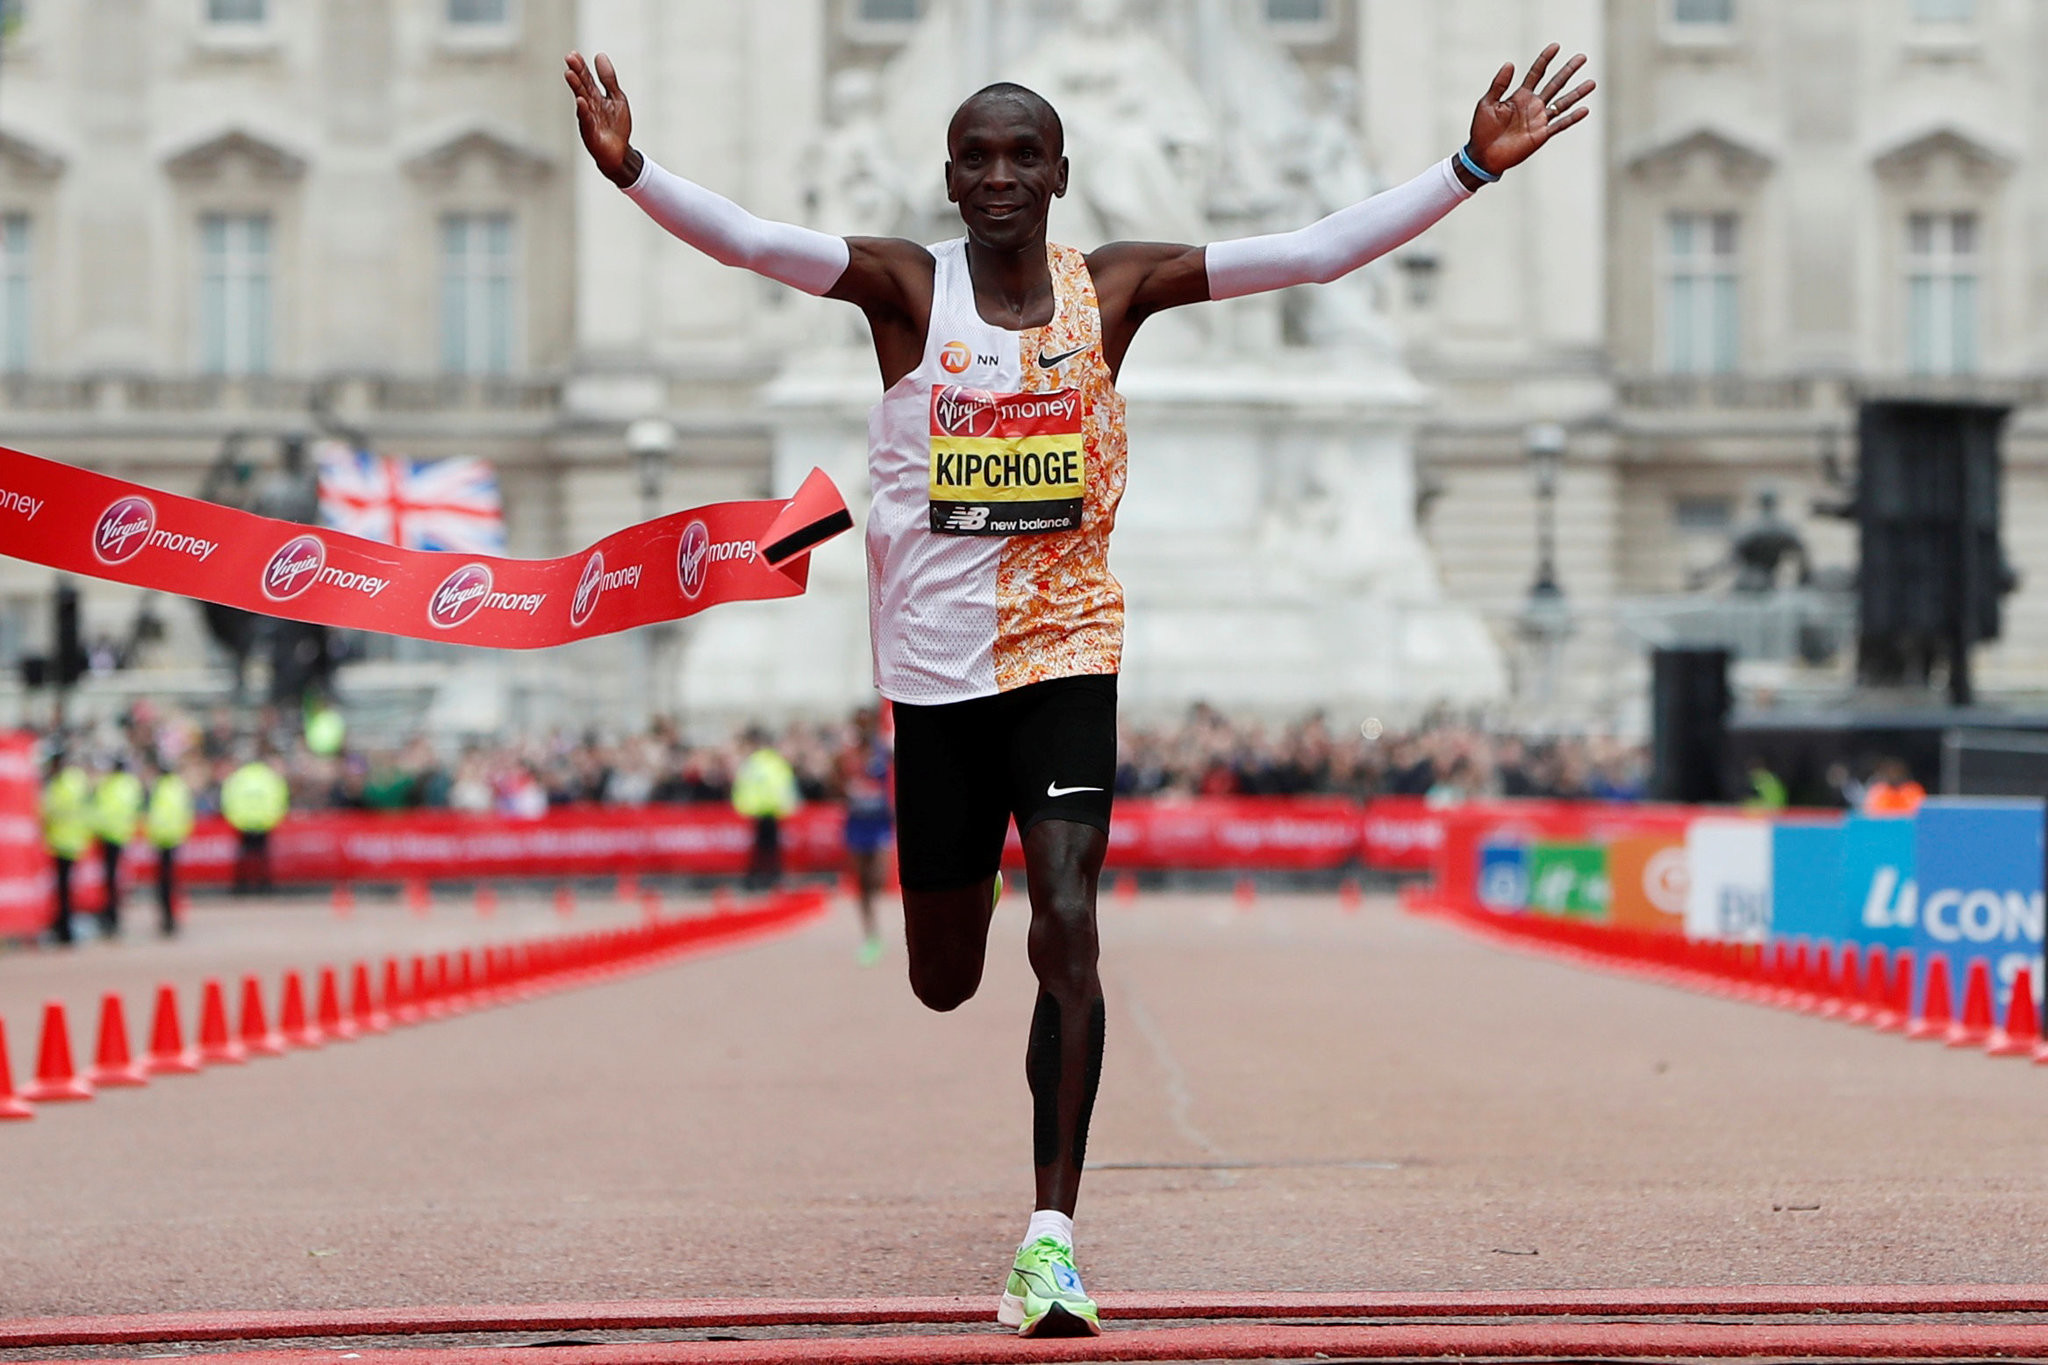 World marathon record holder Eliud Kipchoge dreams of fast time at London marathon